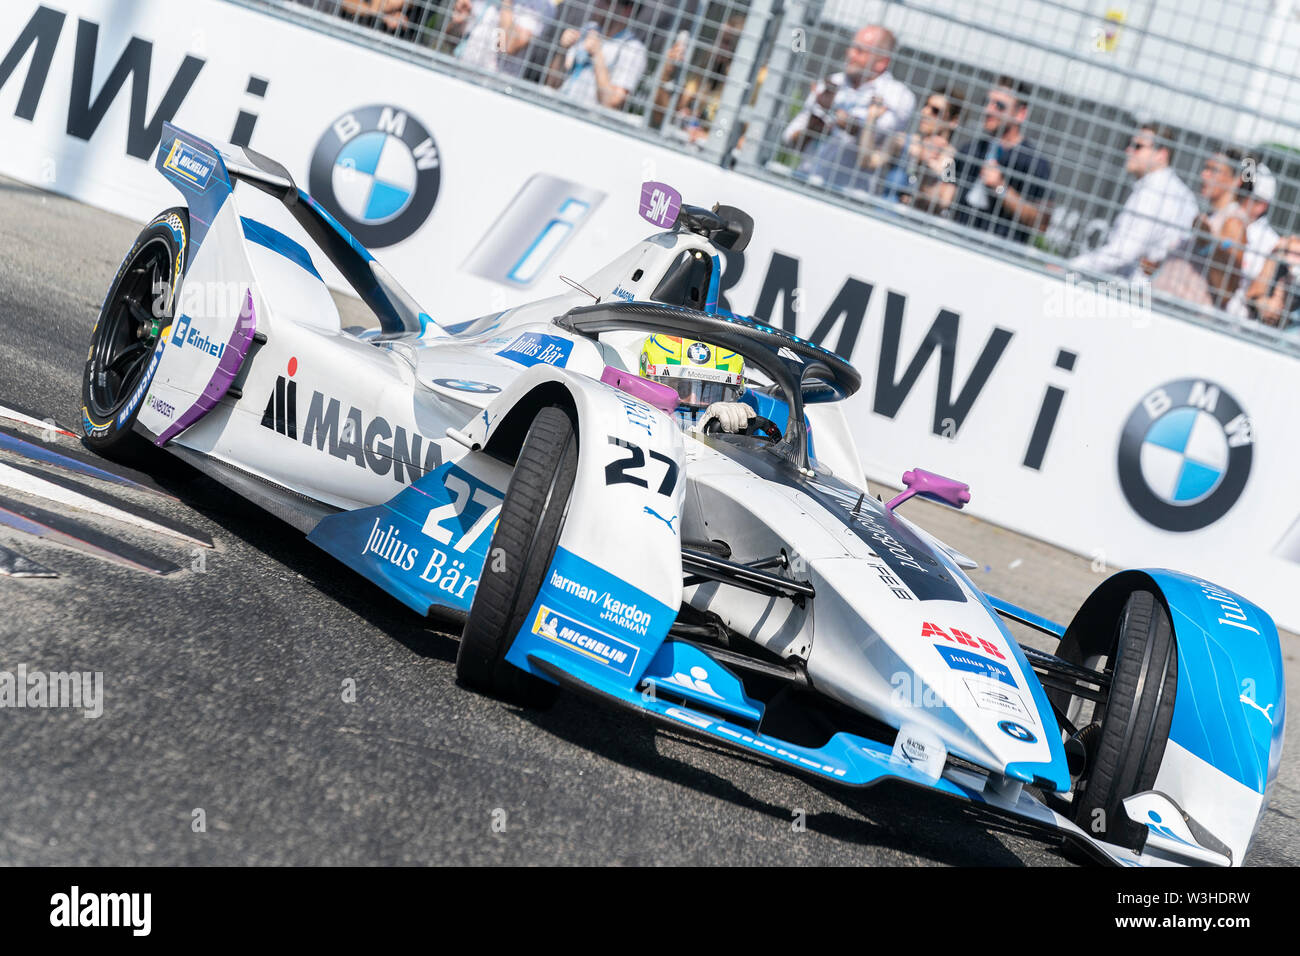 New York, United States. 14th July, 2019. Sam Bird of Virgin Envision team drives electric racing car during New York City E-Prix 2019 Formula E Round 13 at Red Hook Credit: Lev Radin/Pacific Press/Alamy Live News - Stock Image